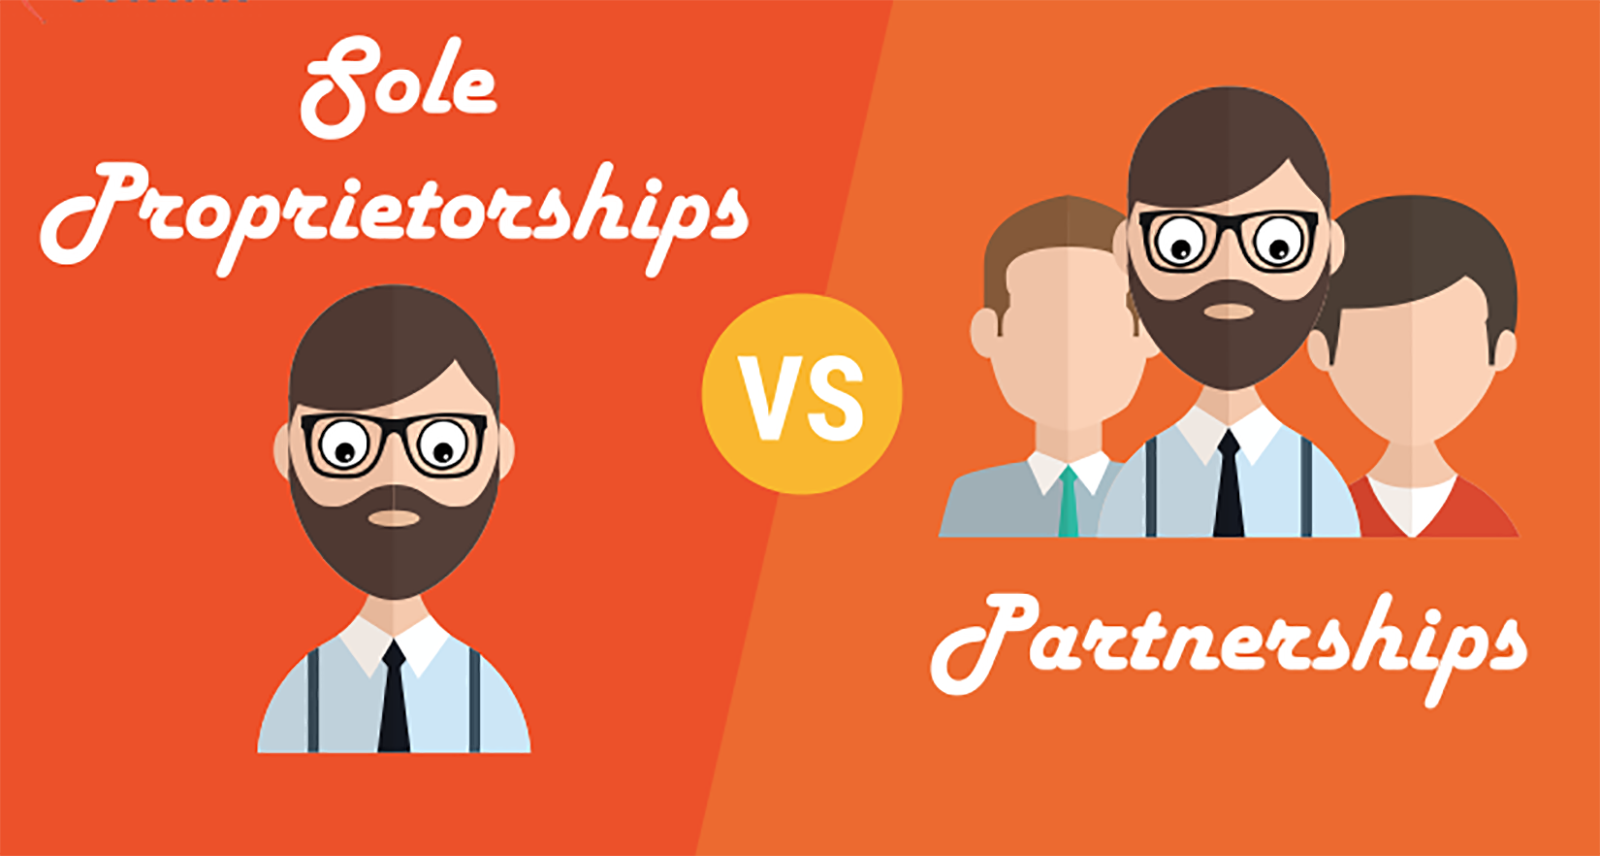 image comparing Sole Proprietorshioops to Partnerships